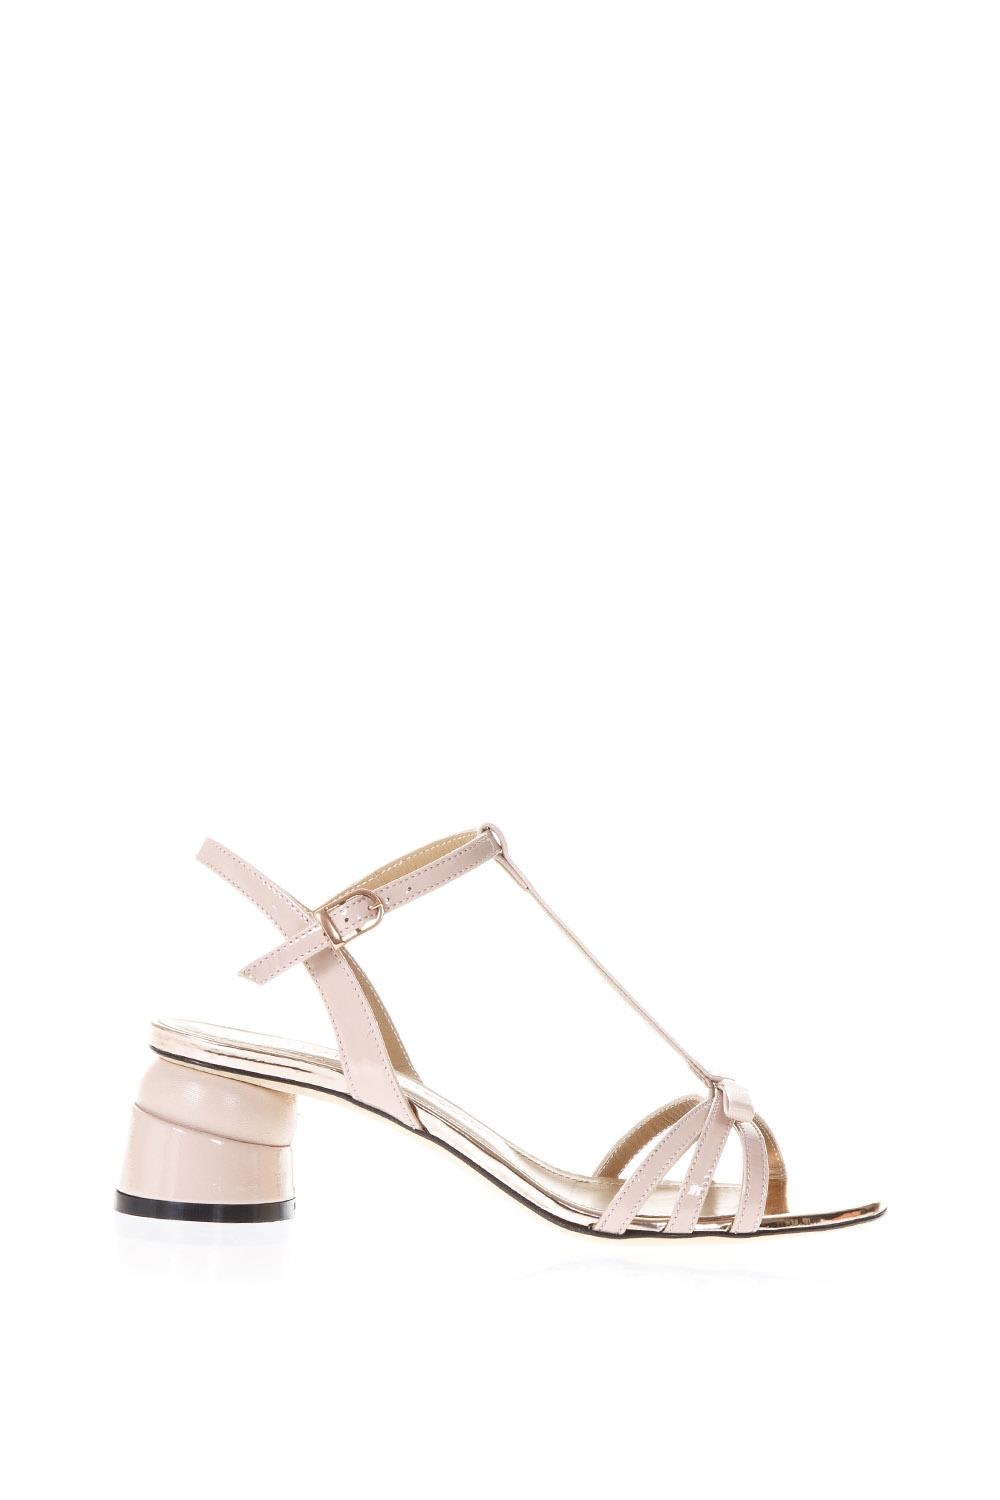 Marc Ellis Phard Patent Leather Sandals With Shaped Heel